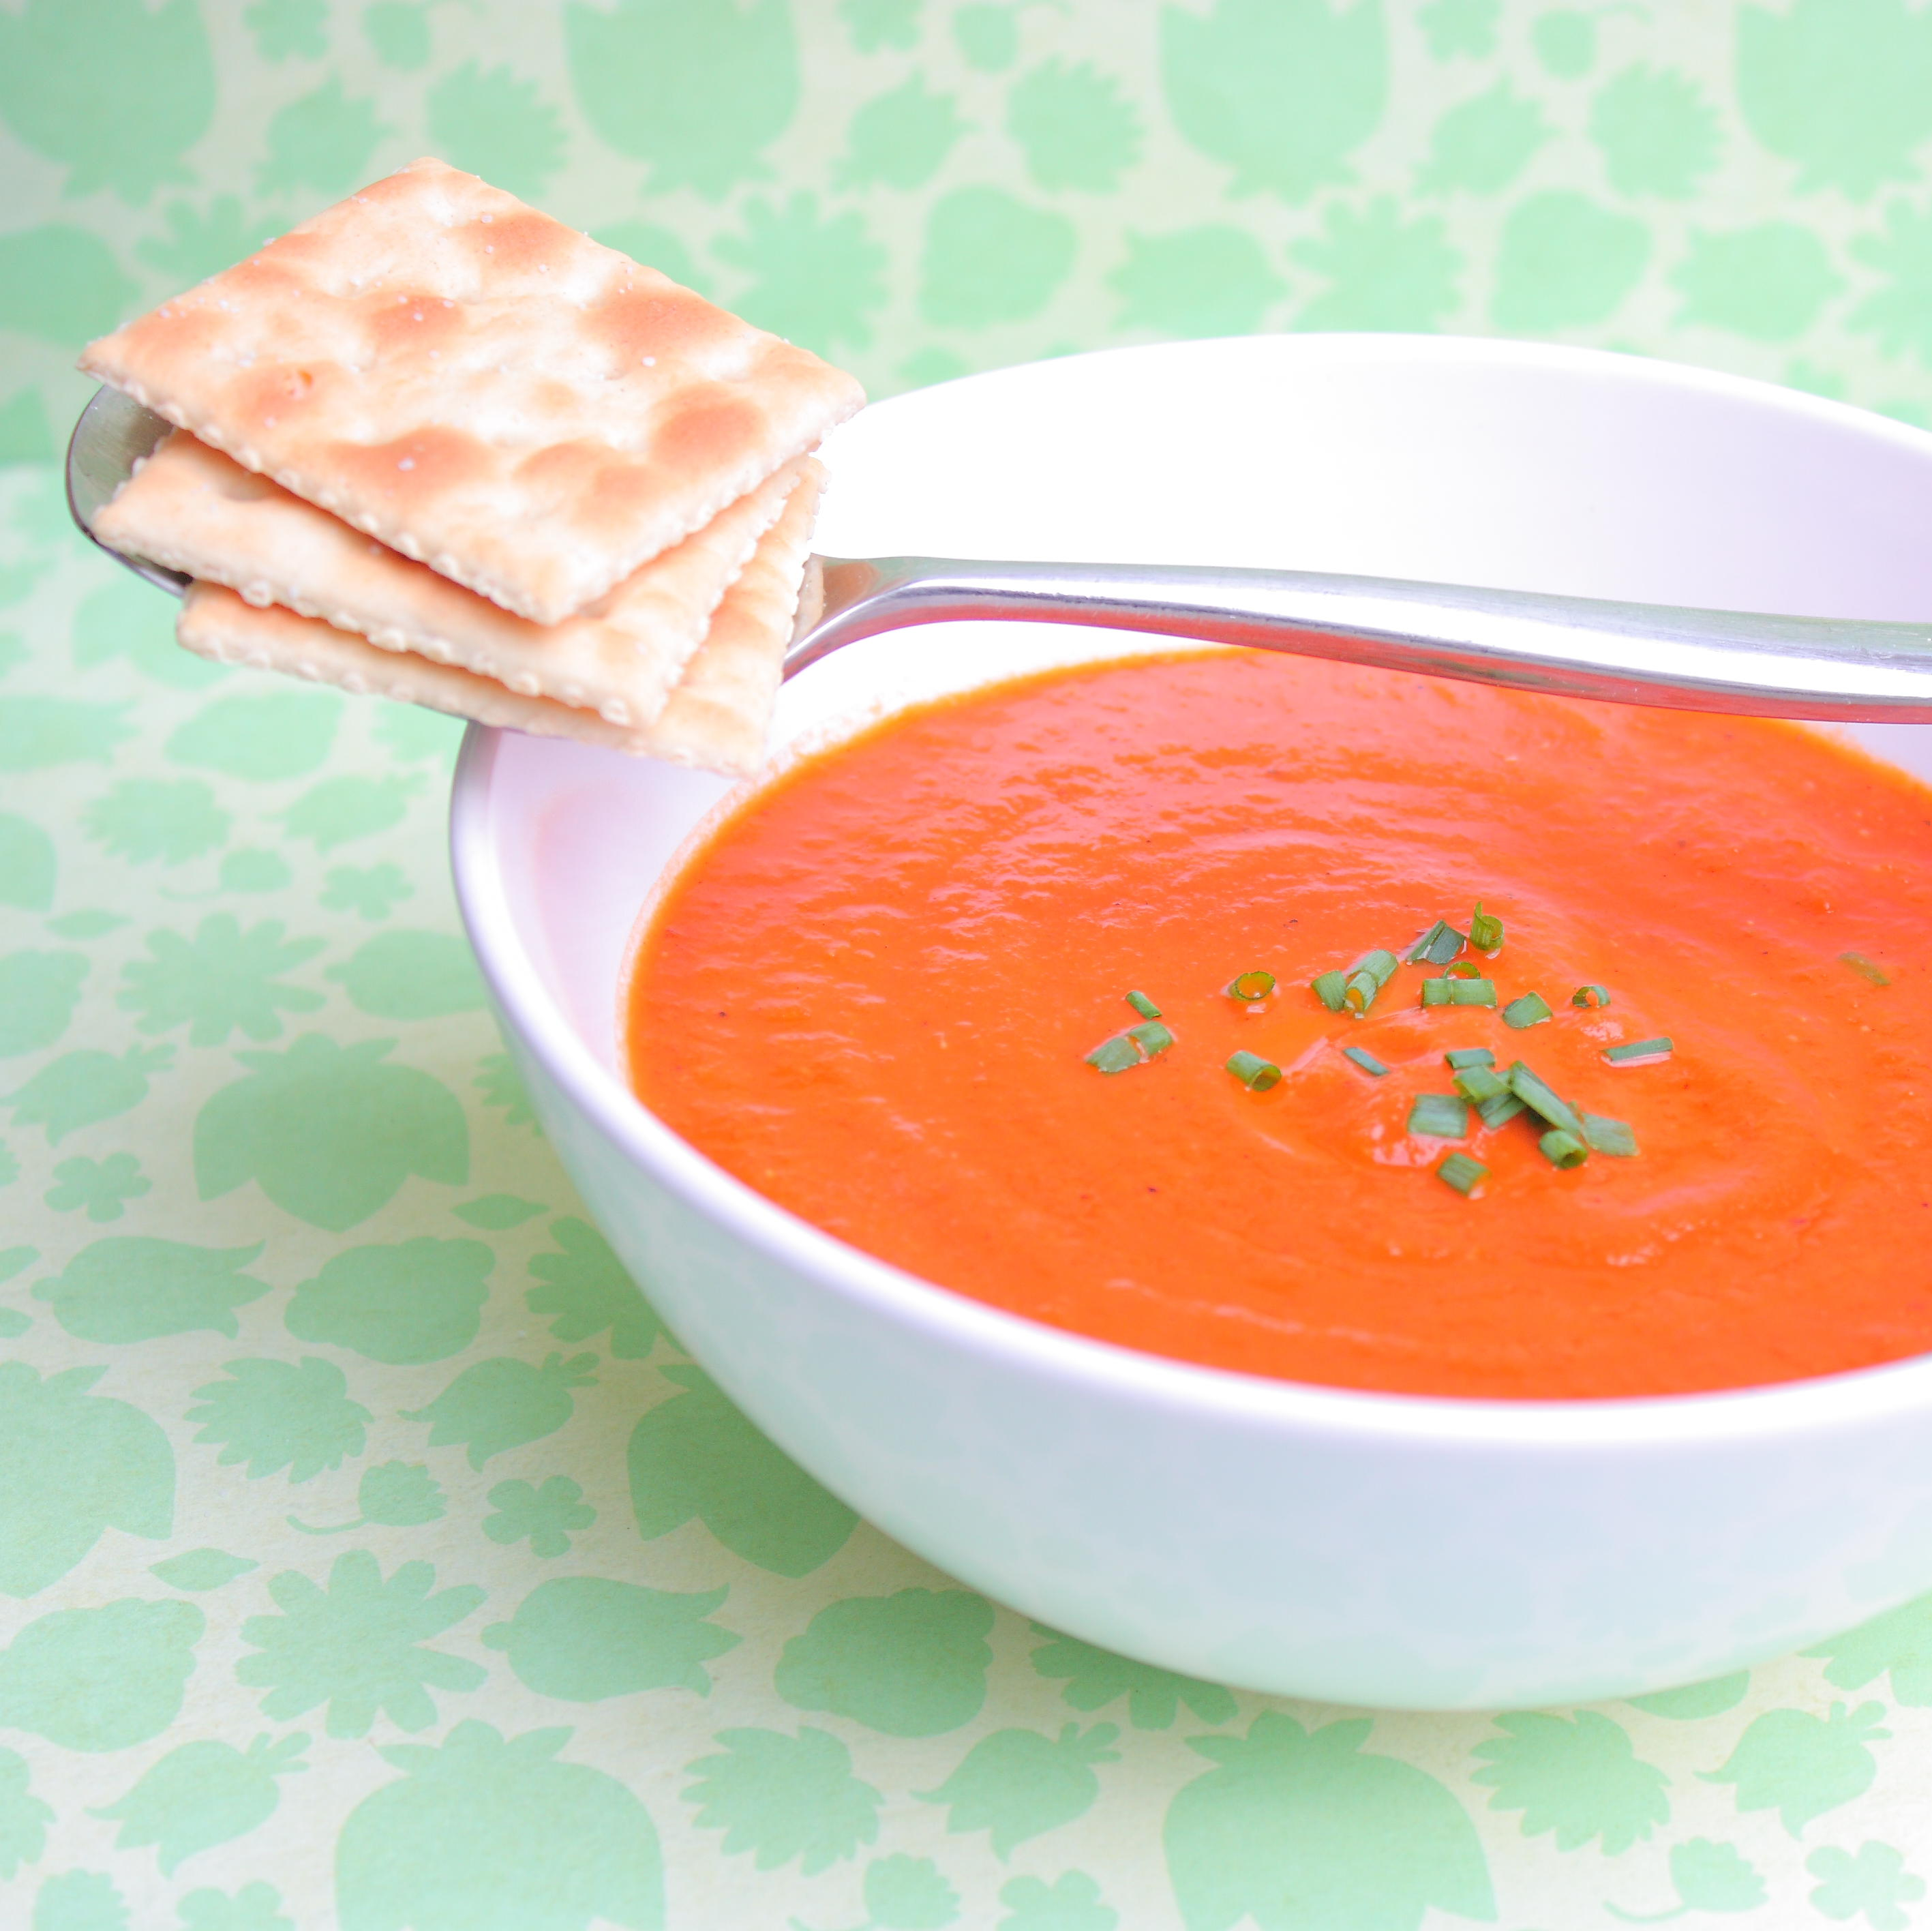 Reduce the amount of sodium, sugar, and preservatives by making your own tomato soup, from alimentageuse.com